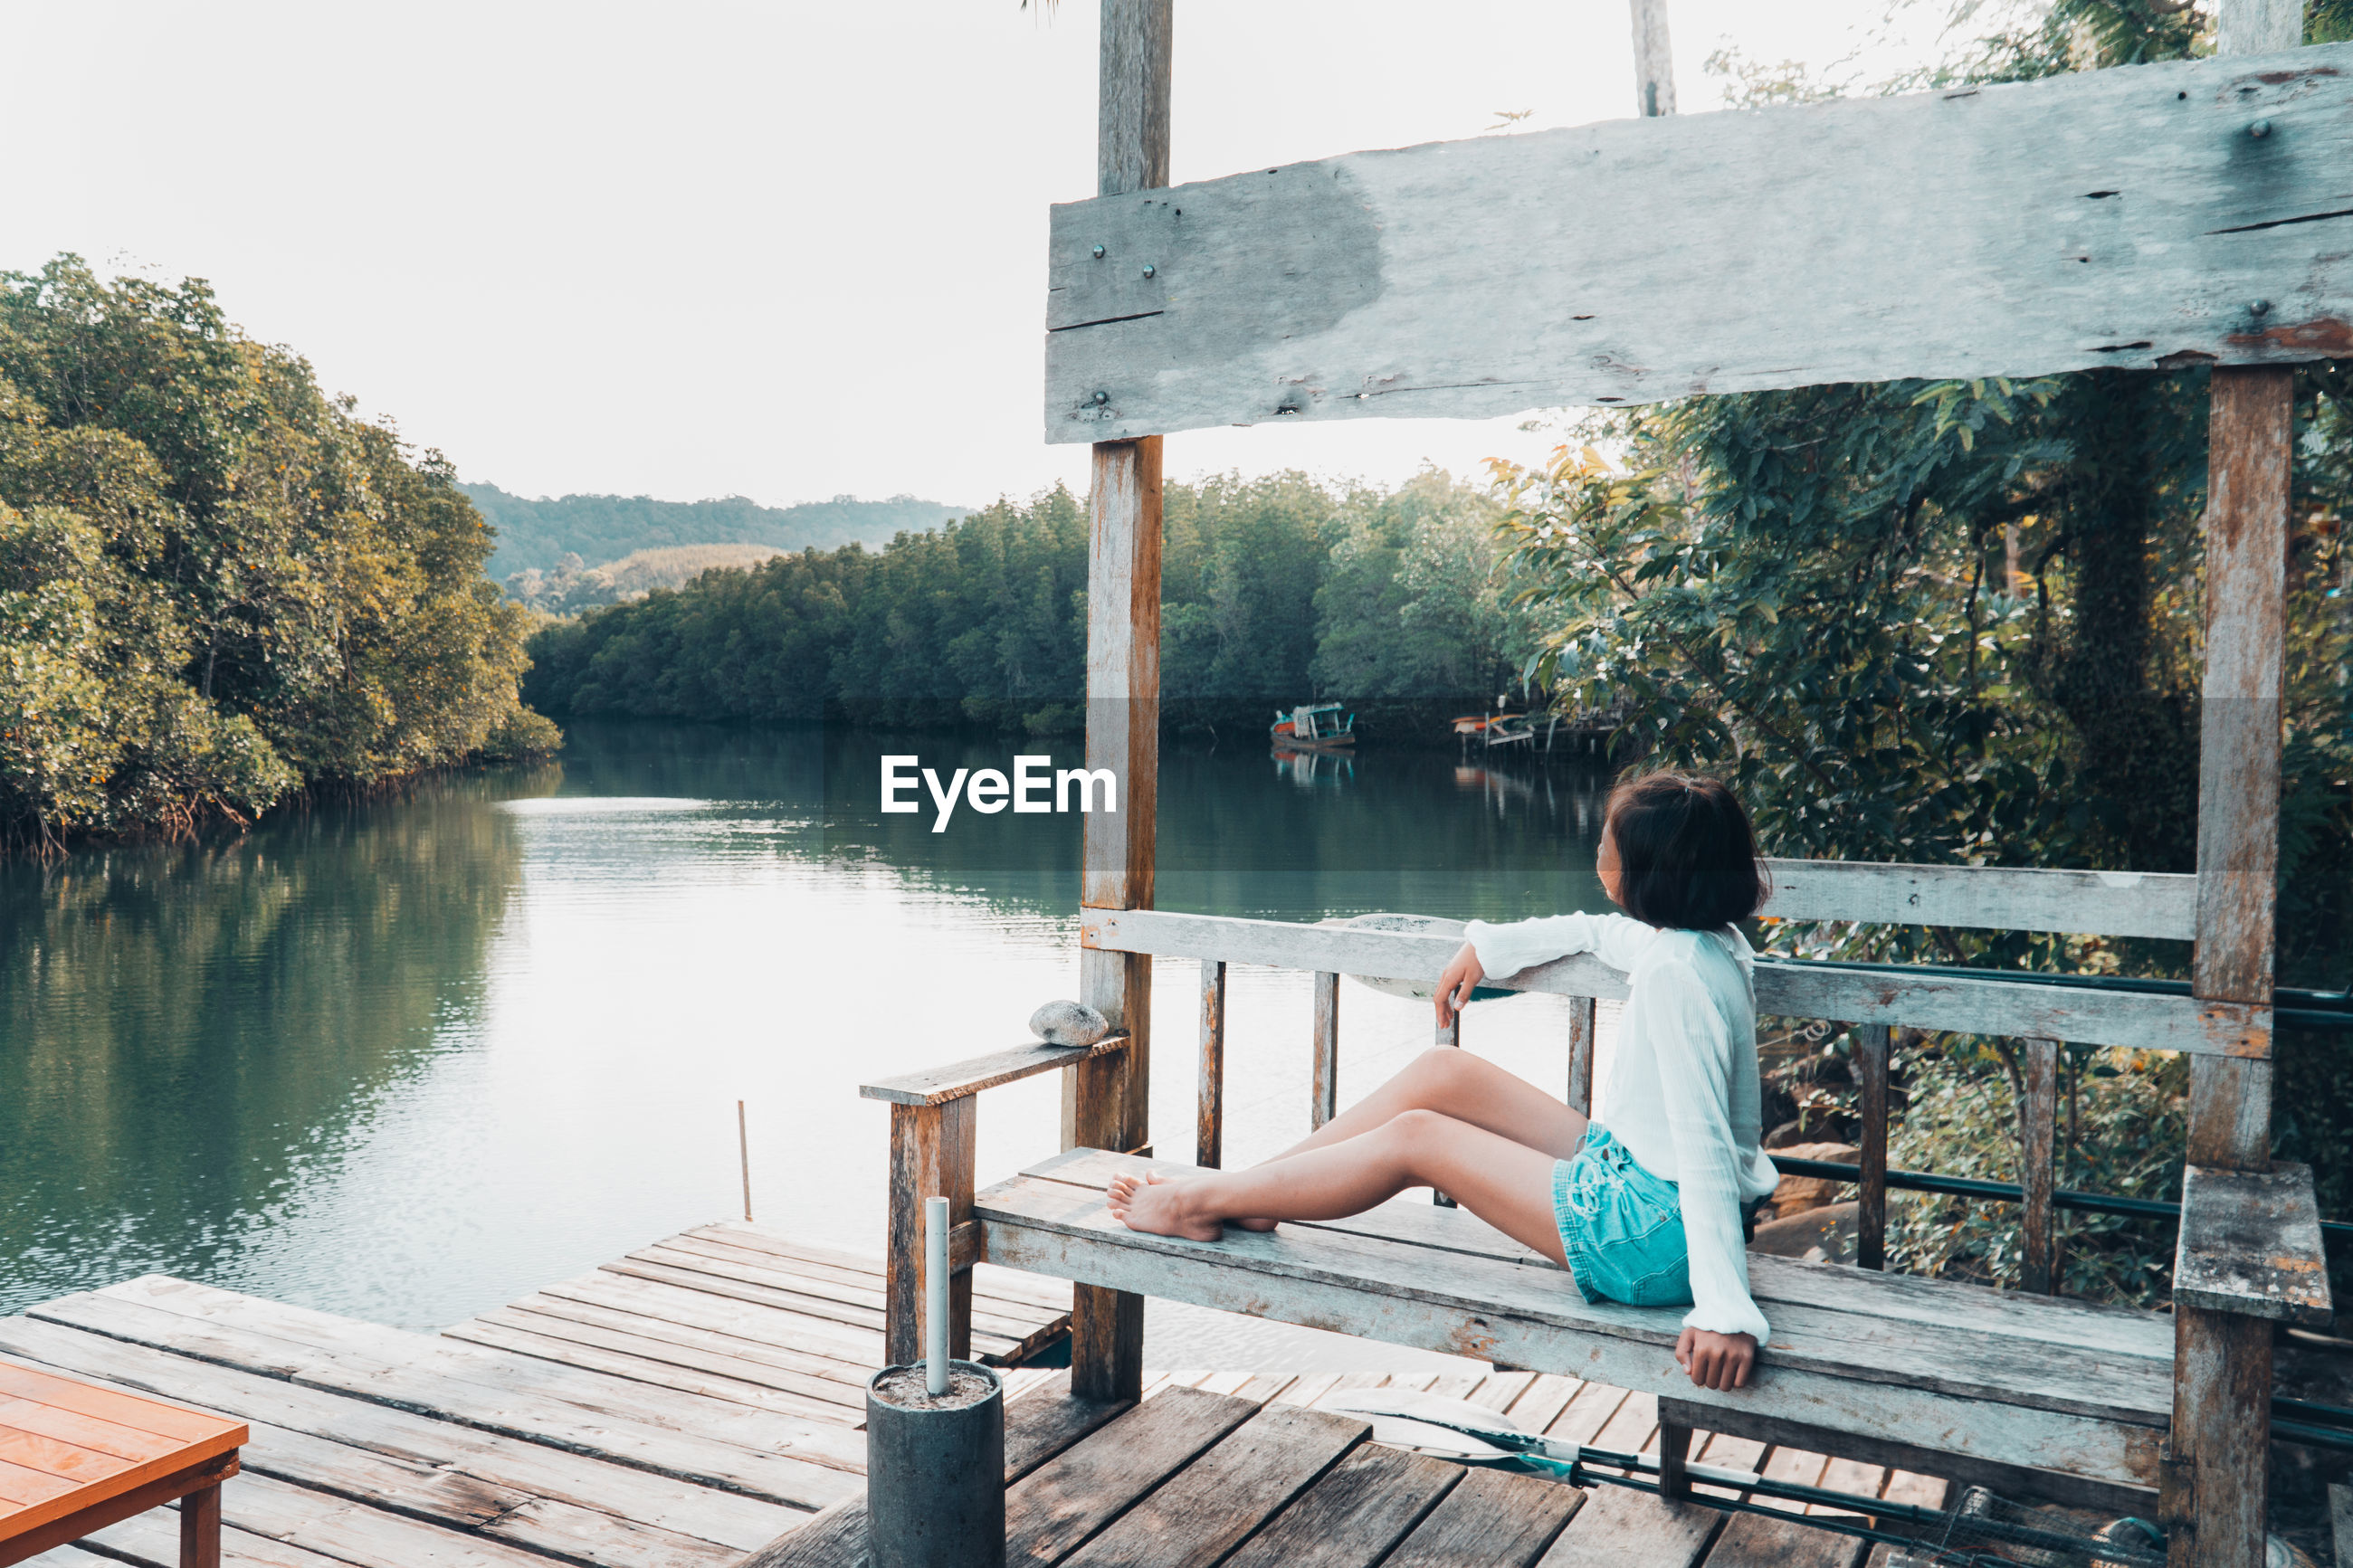 Girl looking at lake against trees